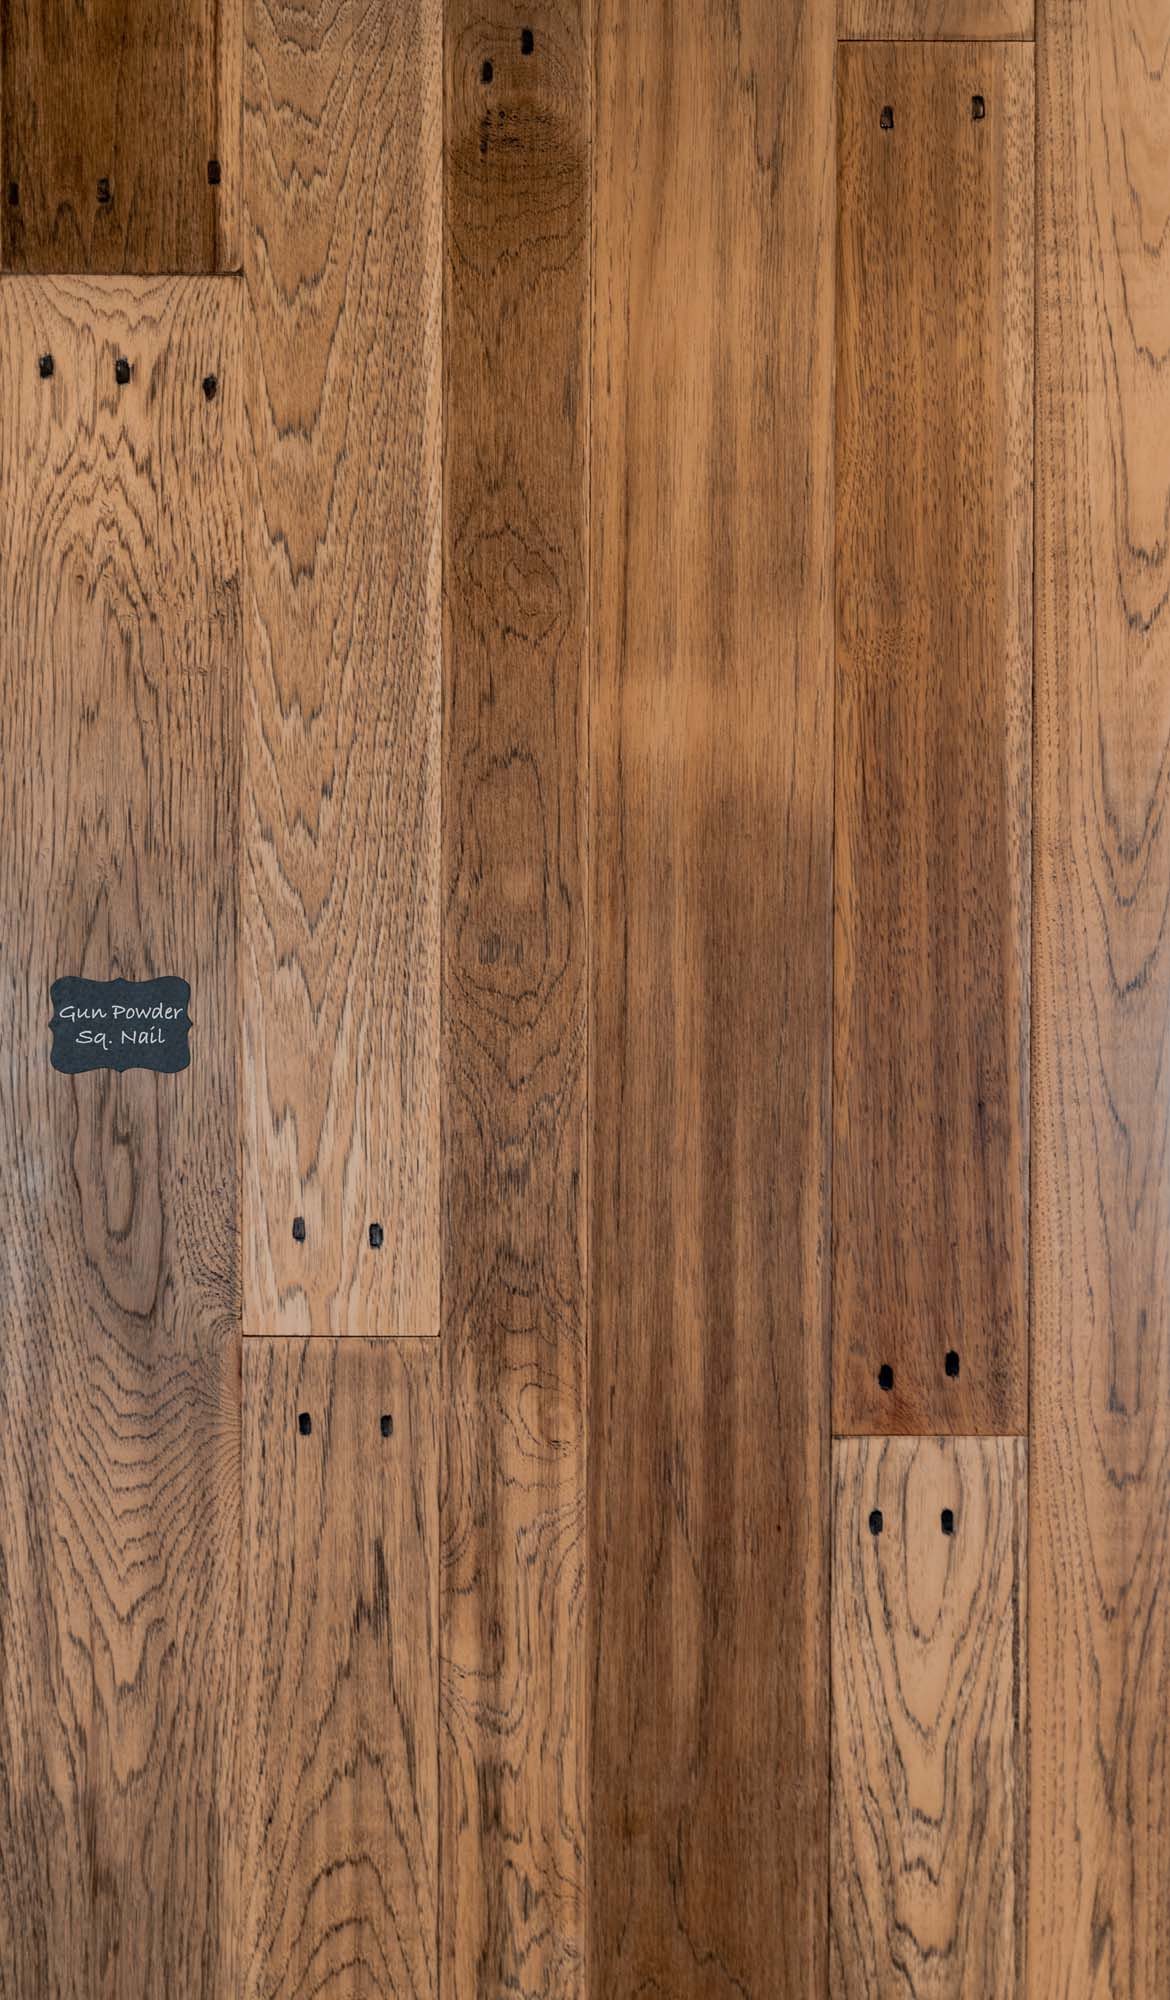 Gunpowder Hickory Square Peg Wood Flooring. Hickory Hardwood Flooring is a great choice for a high contrast classic look on your floors.